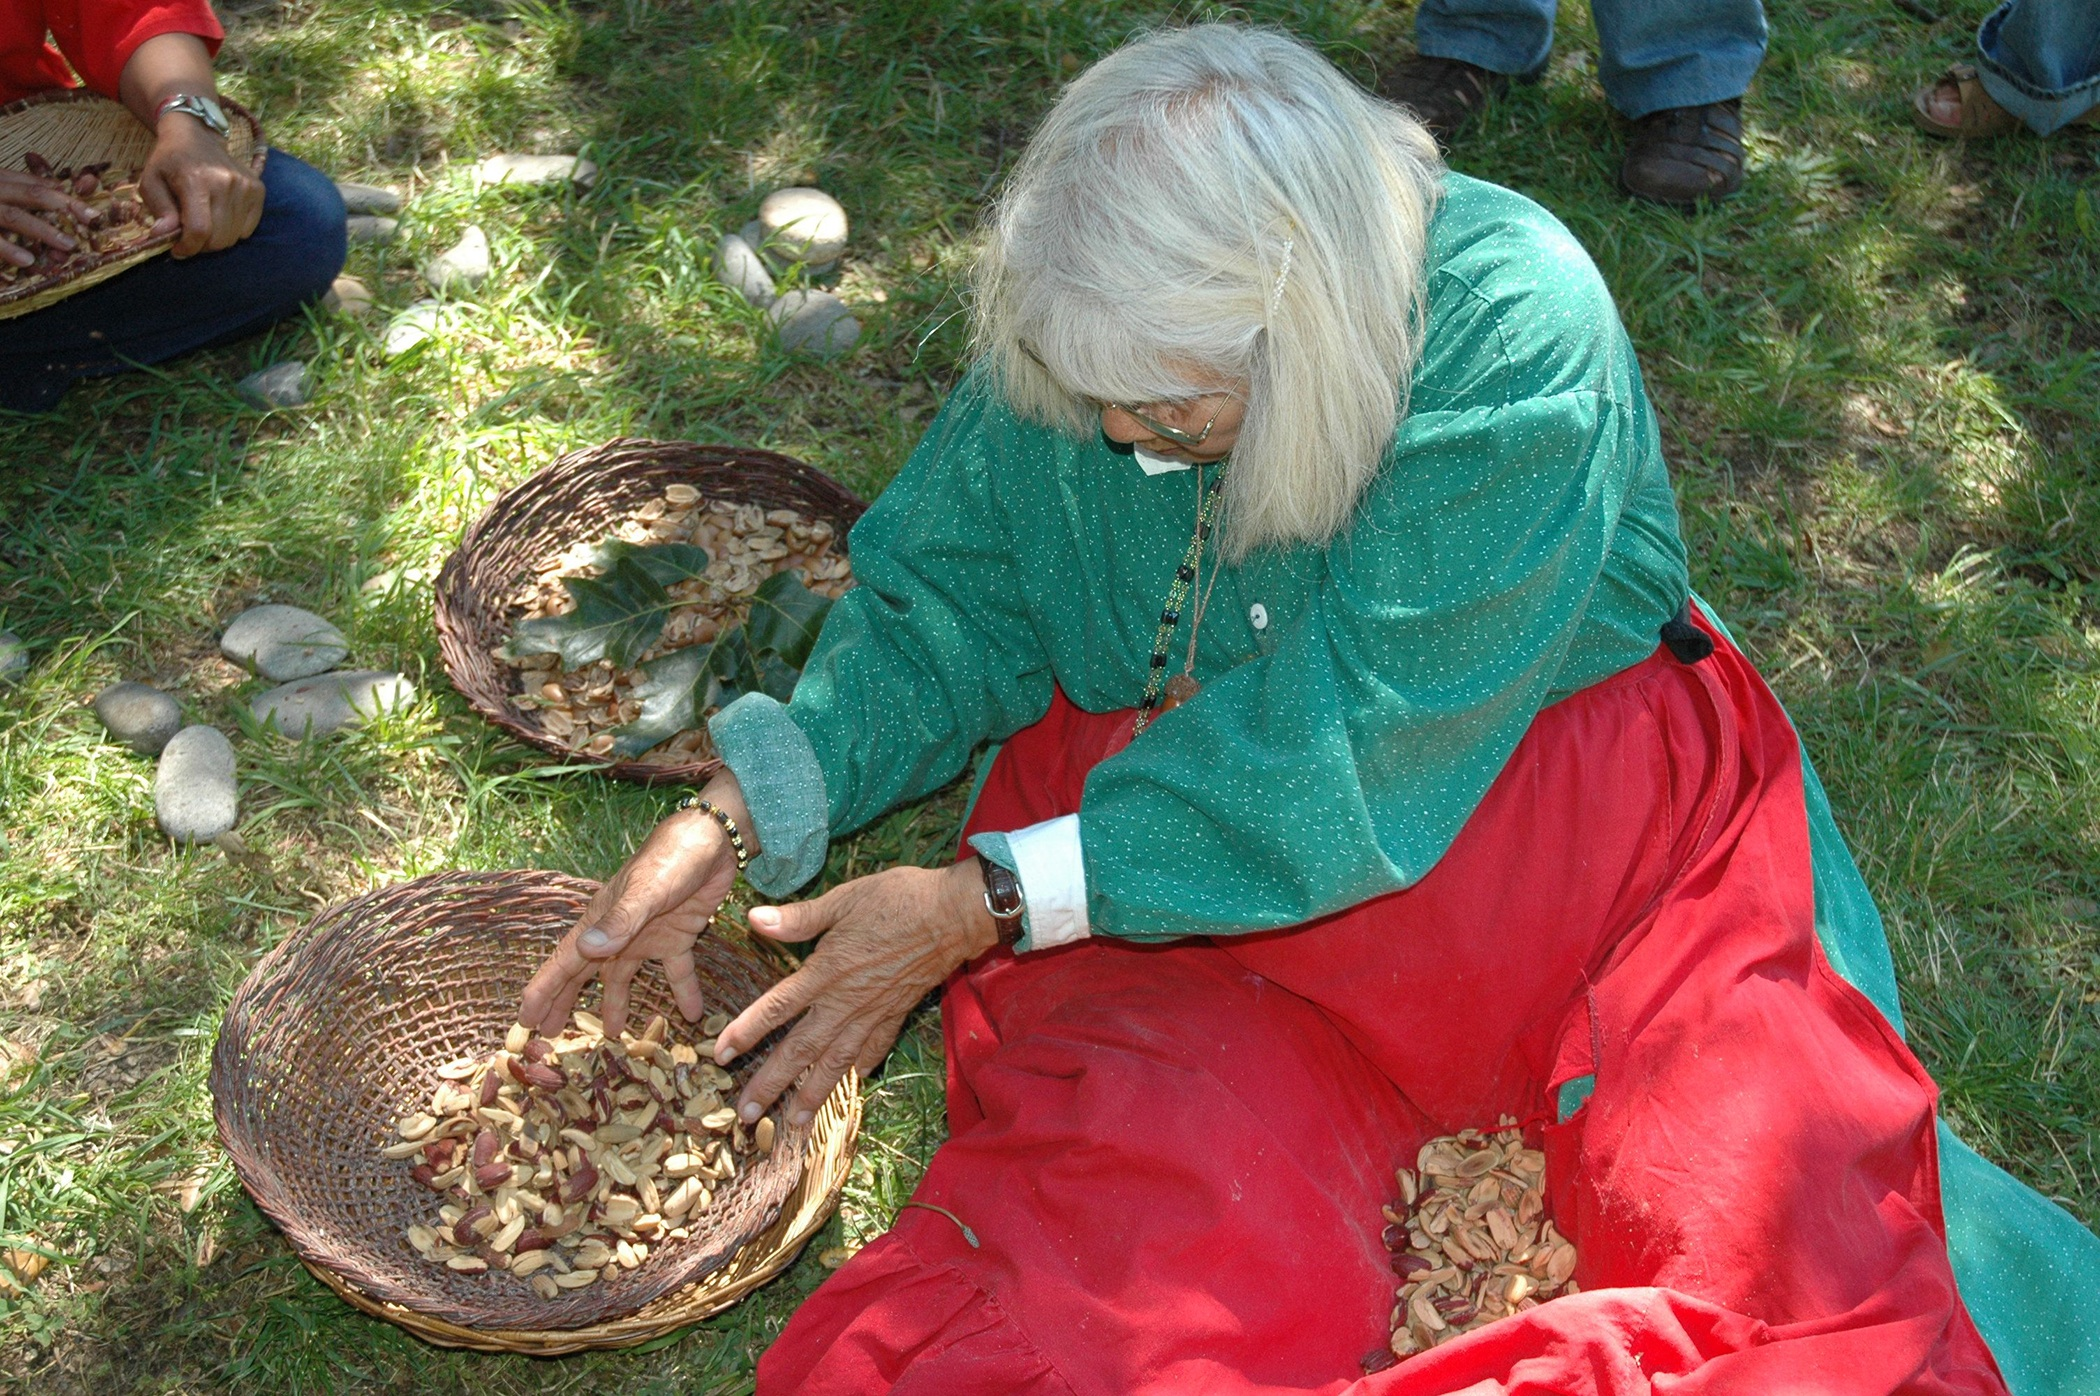 Elder with Acorns300dpi.jpg